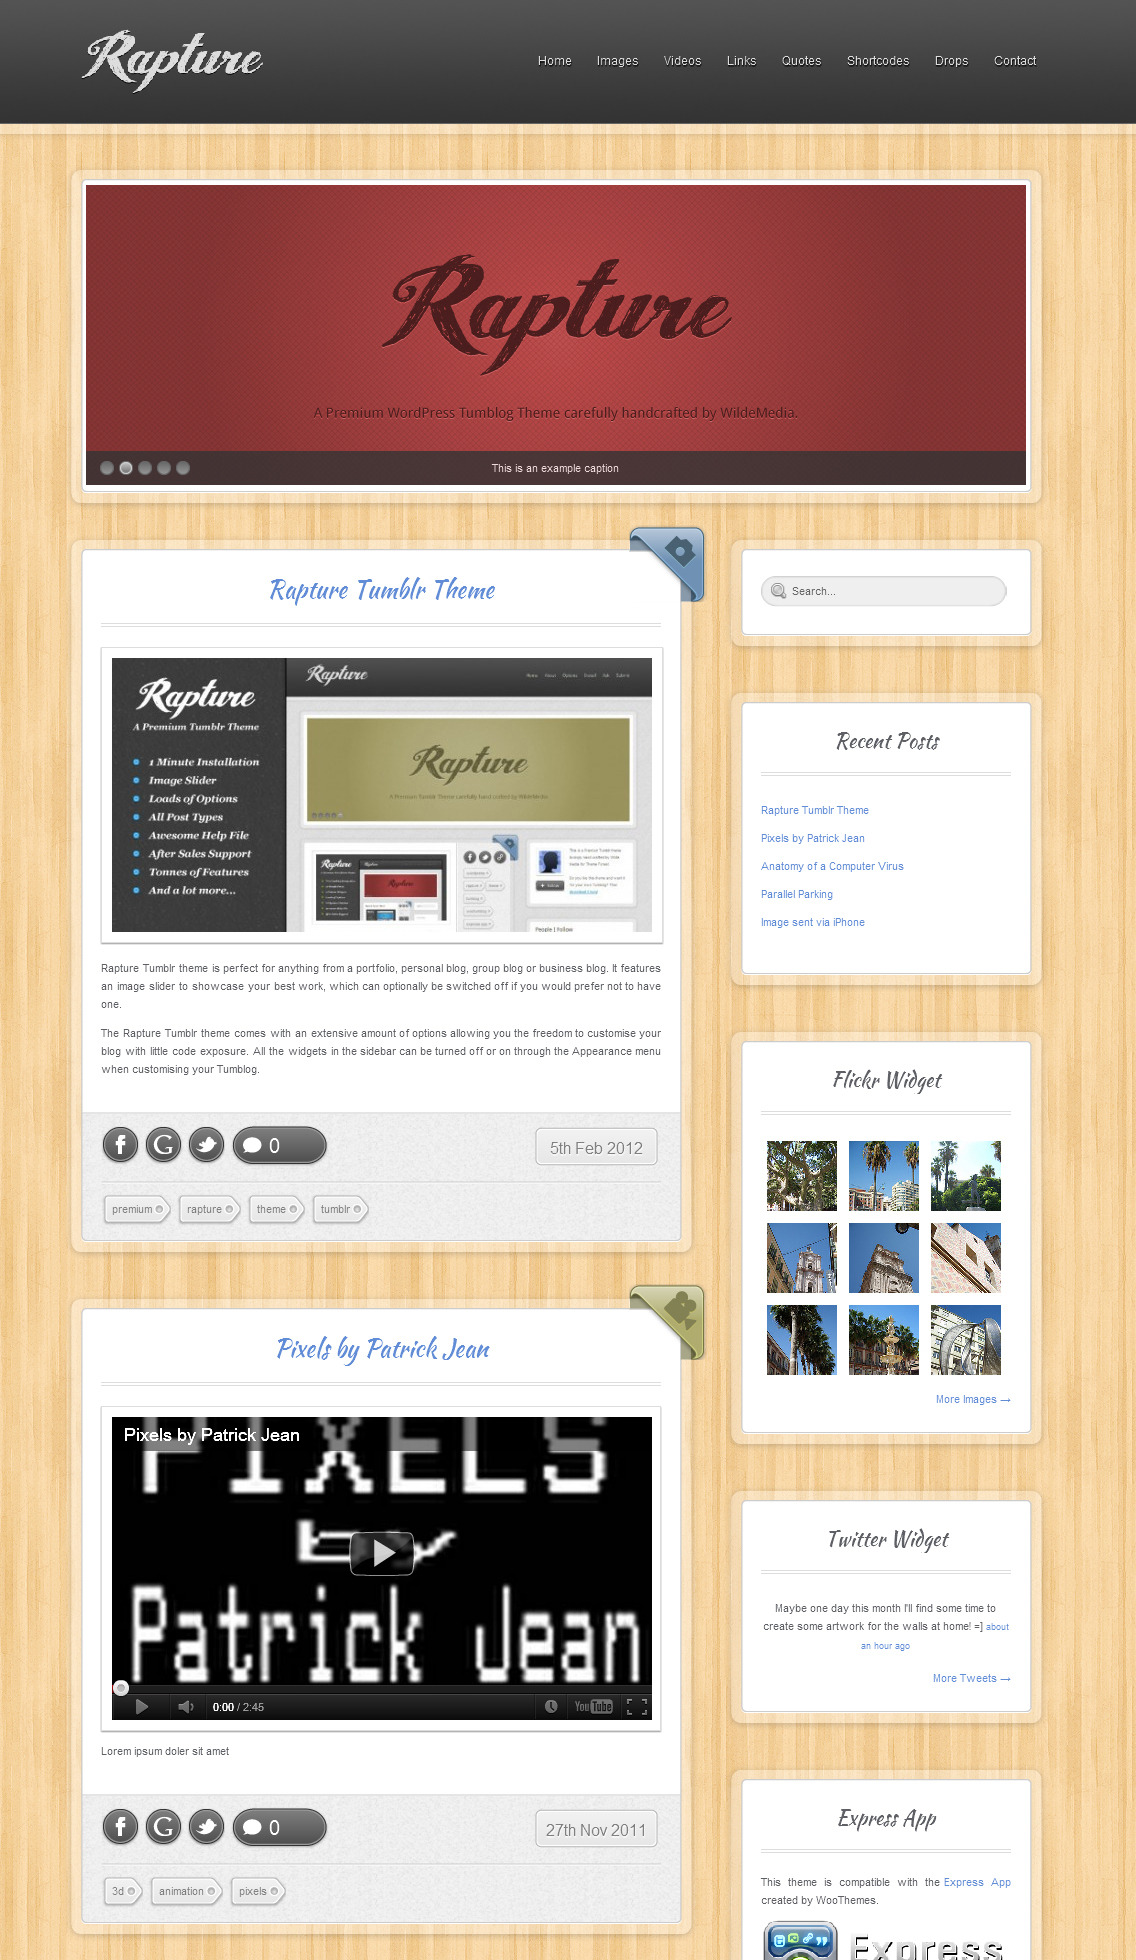 Rapture WordPress and Tumblog Theme